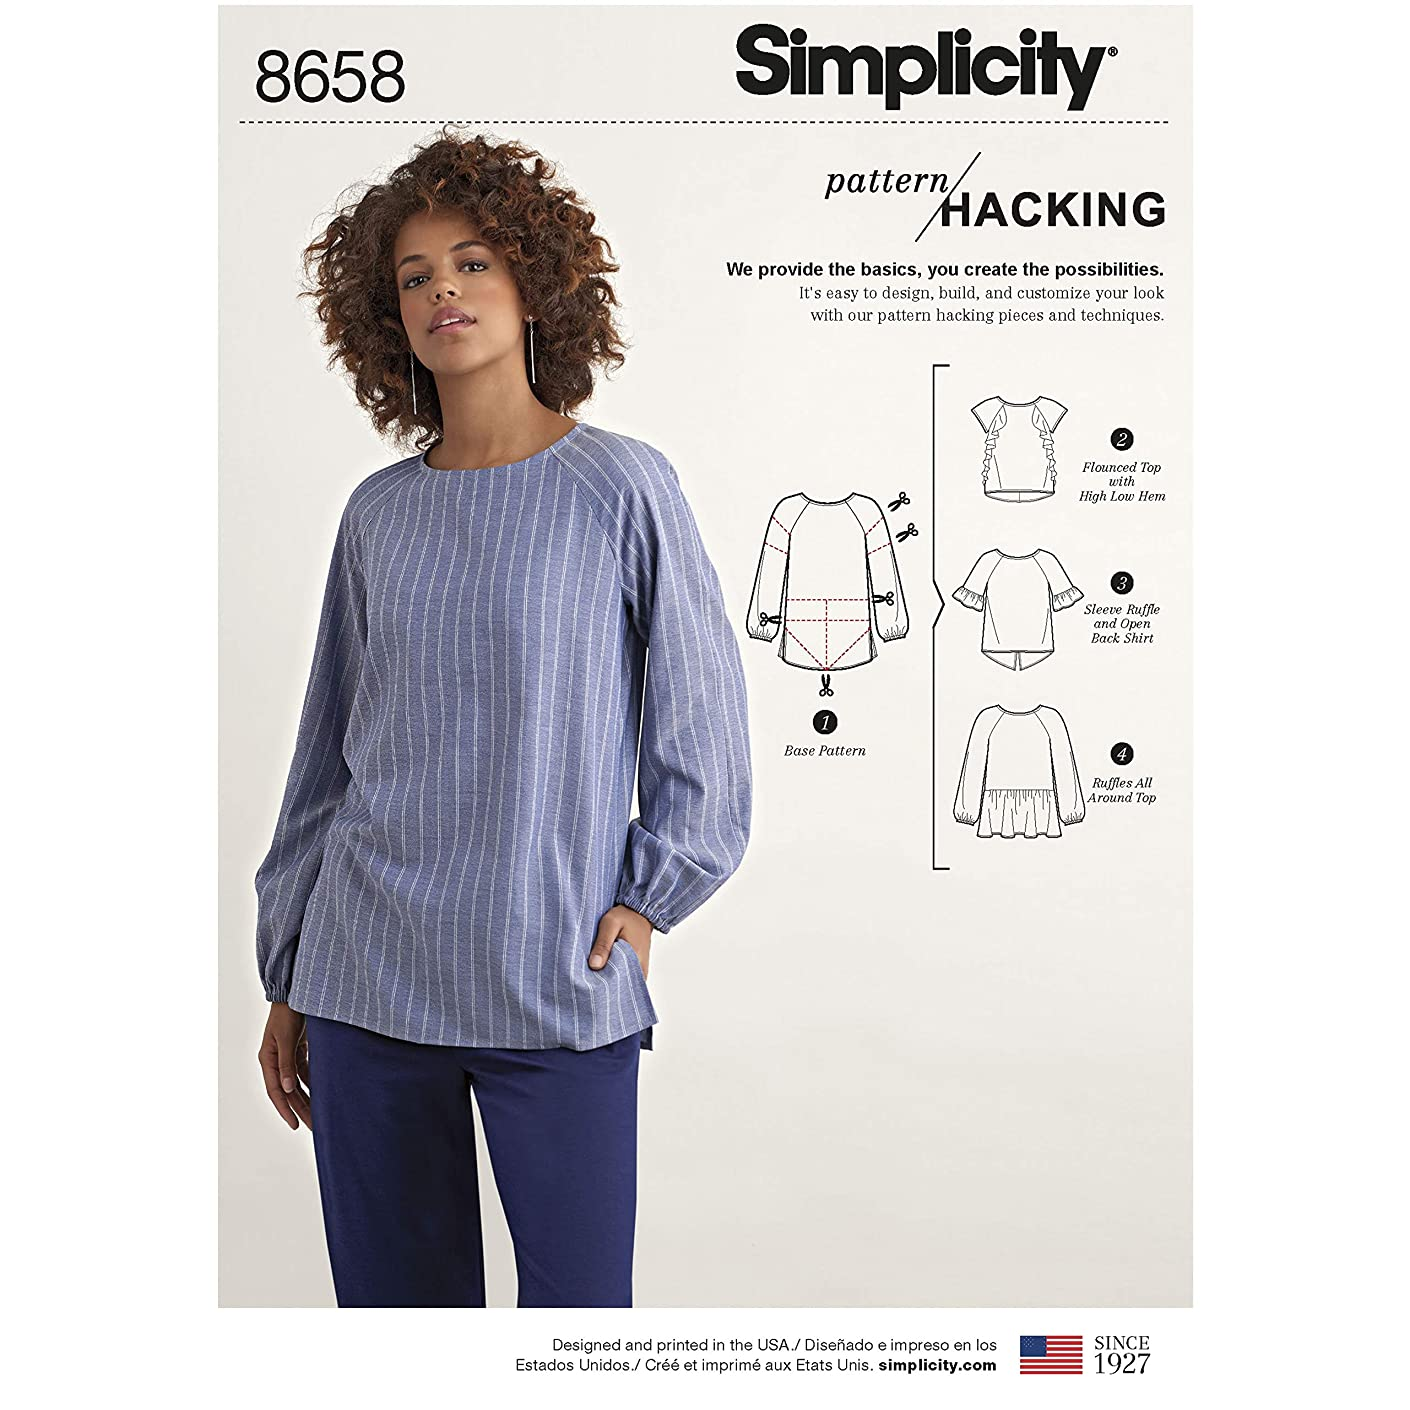 Simplicity Sewing Pattern D0945 / 8658 - Misses' Top with Options for Design Hacking, A (XXS-XS-S-M-L-XL-XXL)